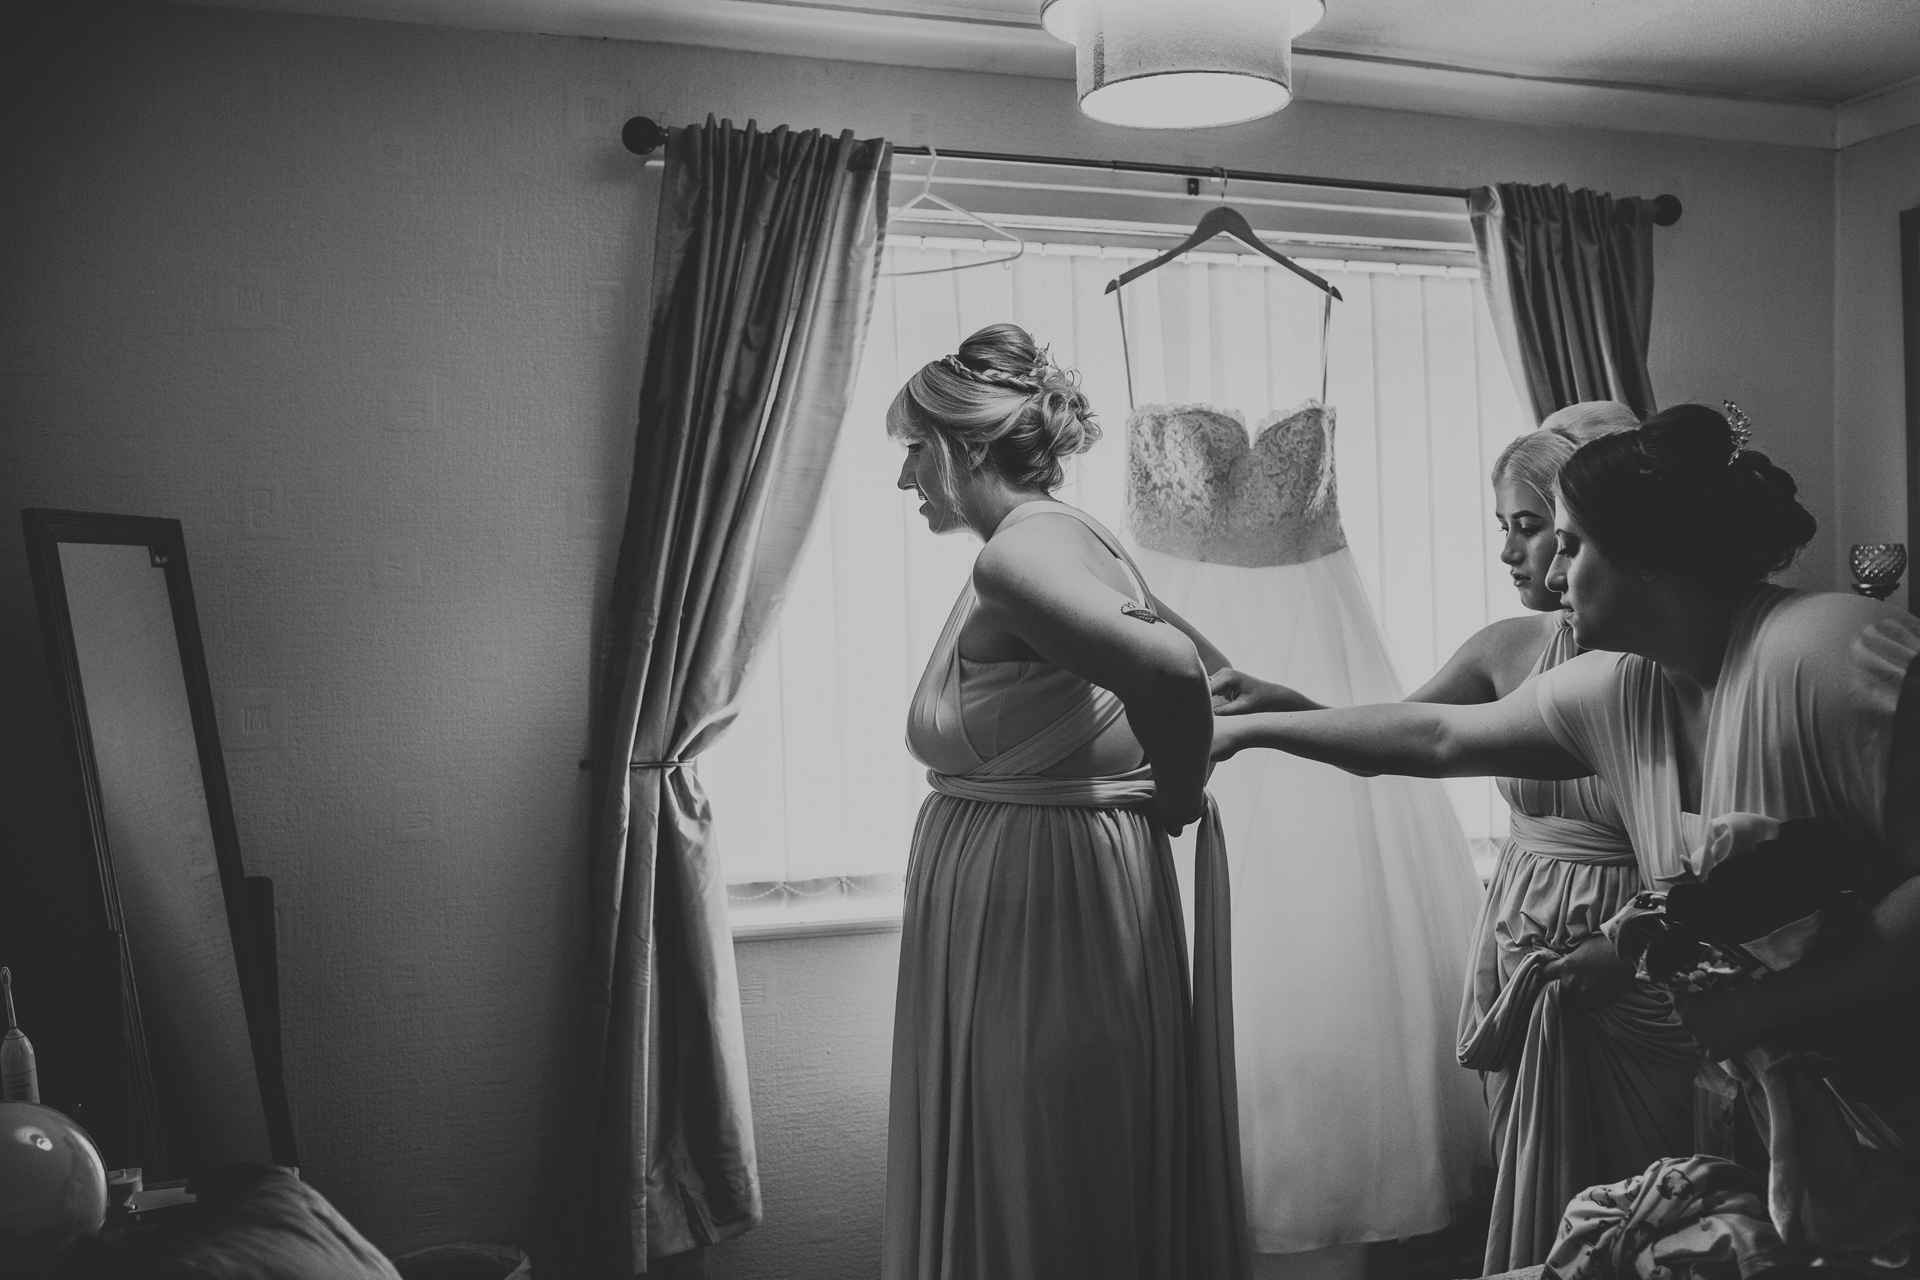 Bridesmaids help to dress another in front of a window, the wedding dress hangs from the curtain rail above the window.